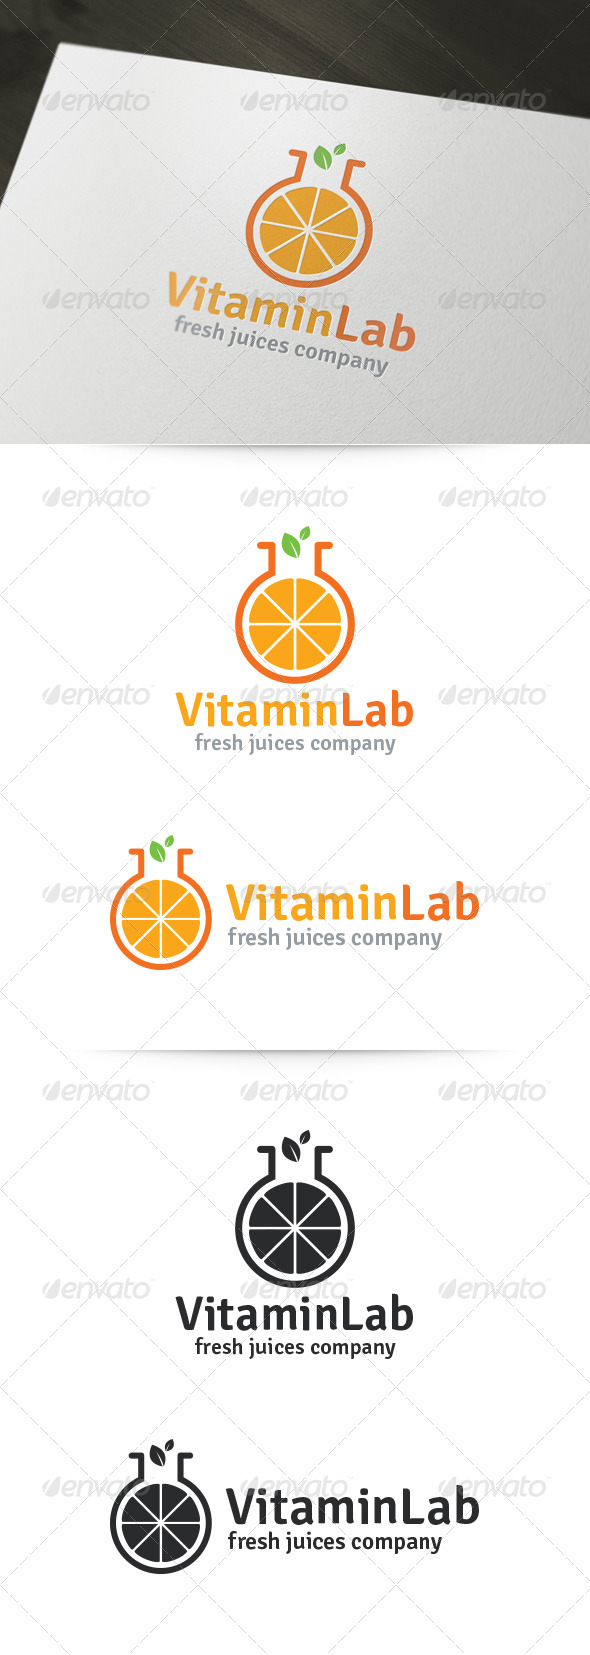 Vitamin Lab Logo